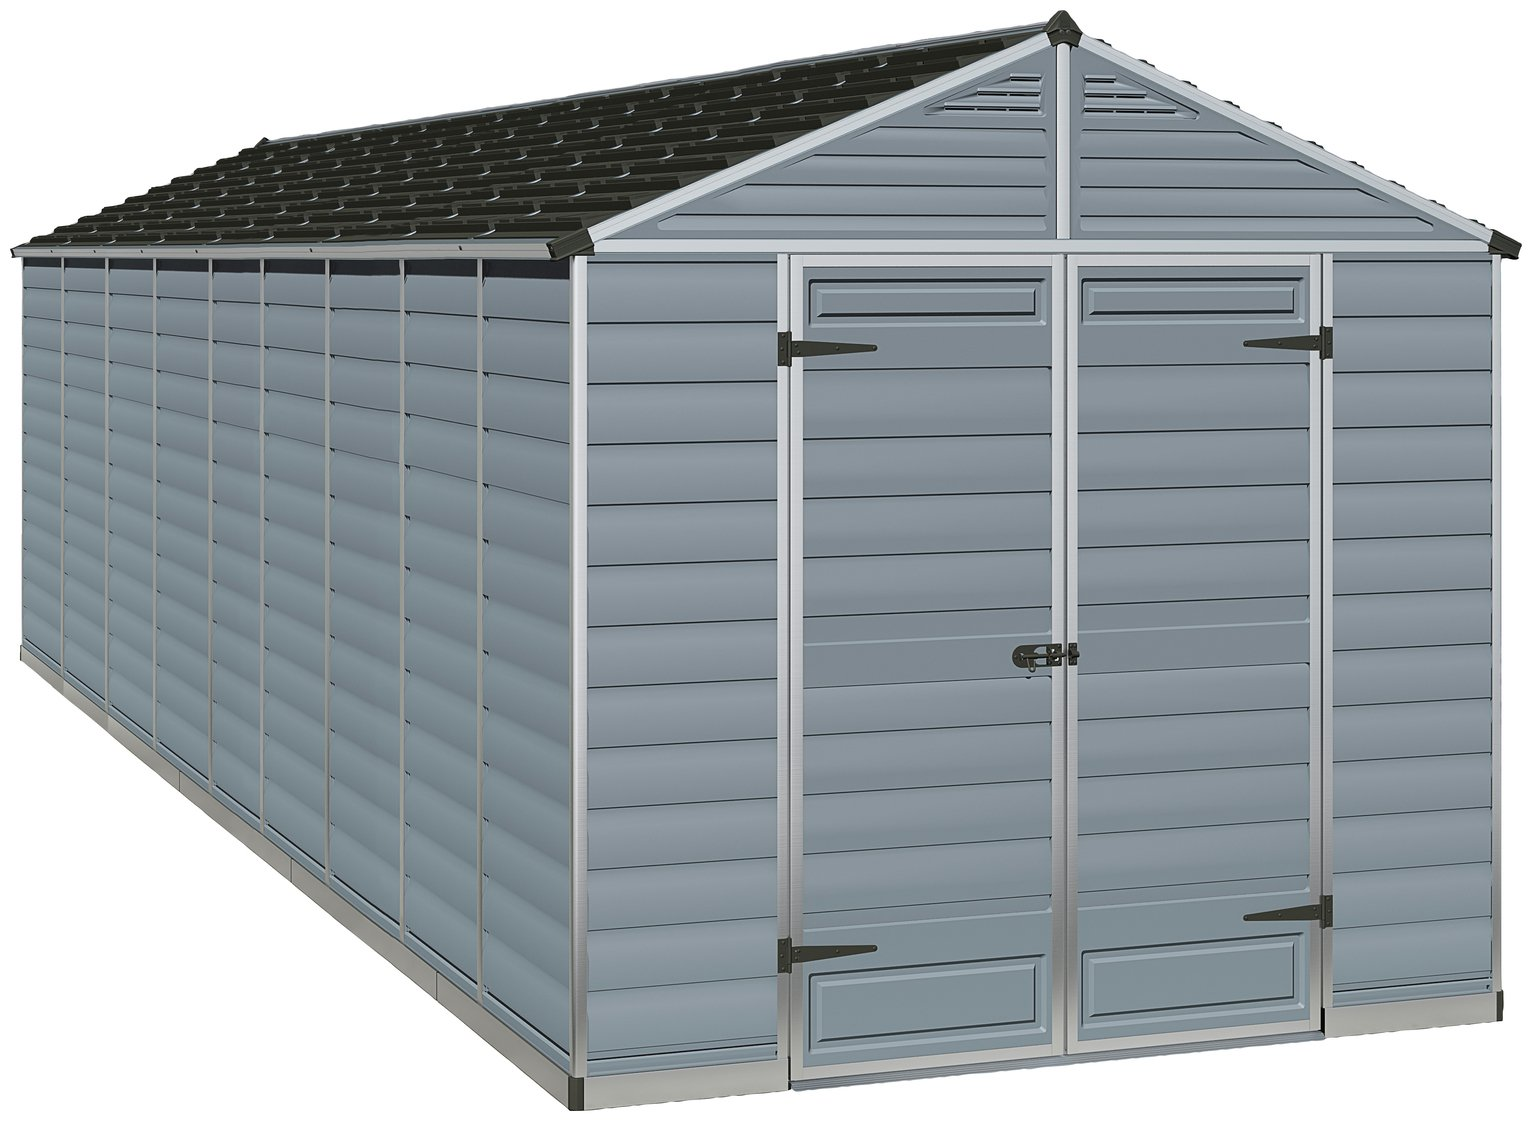 Palram Skylight Plastic 8 x 20ft Shed - Dark Grey Best Price, Cheapest Prices